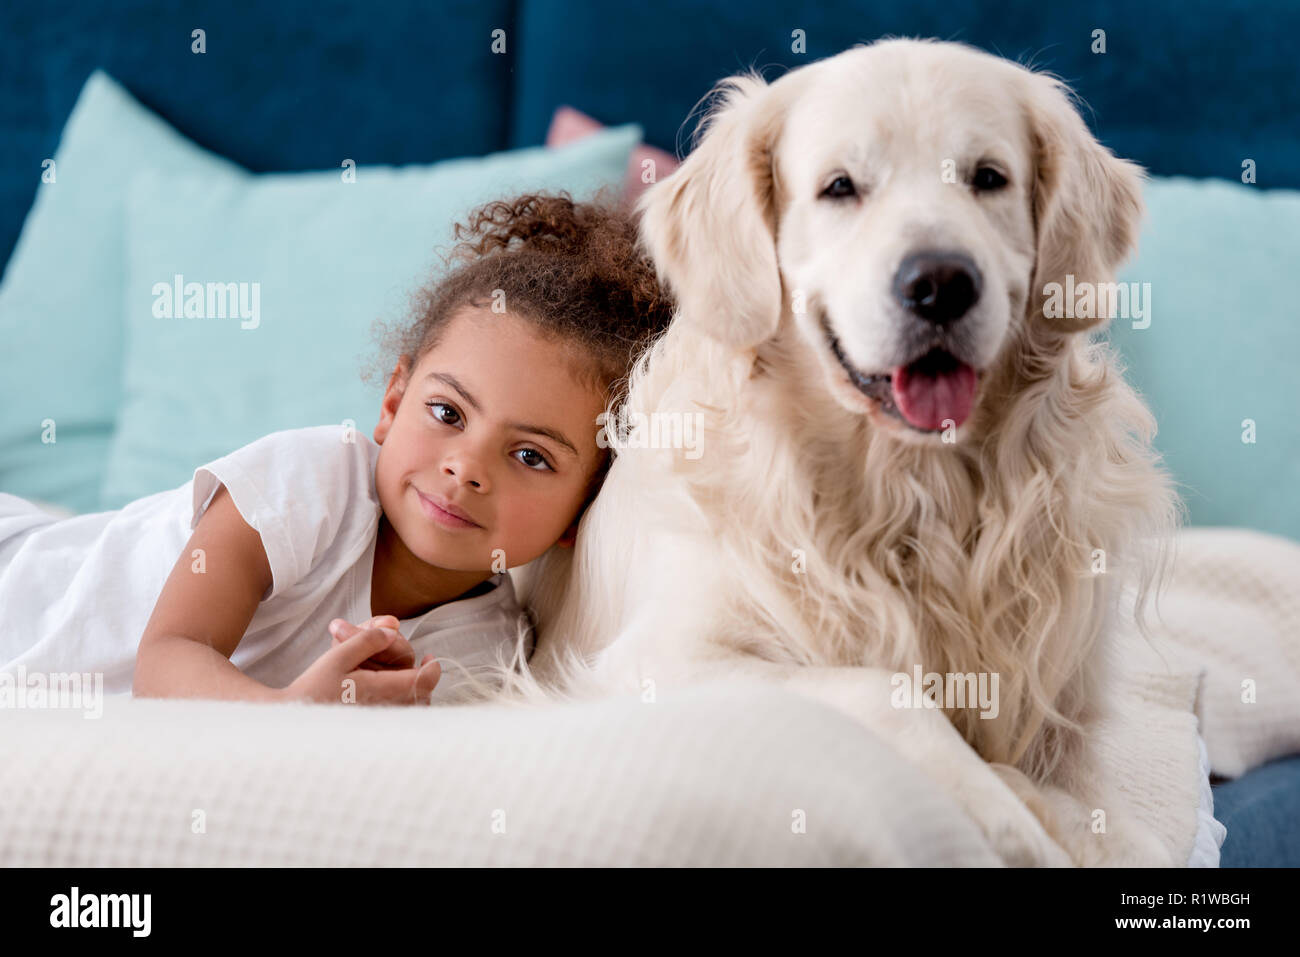 Adorable african american child with happy dog smiling at camera - Stock Image